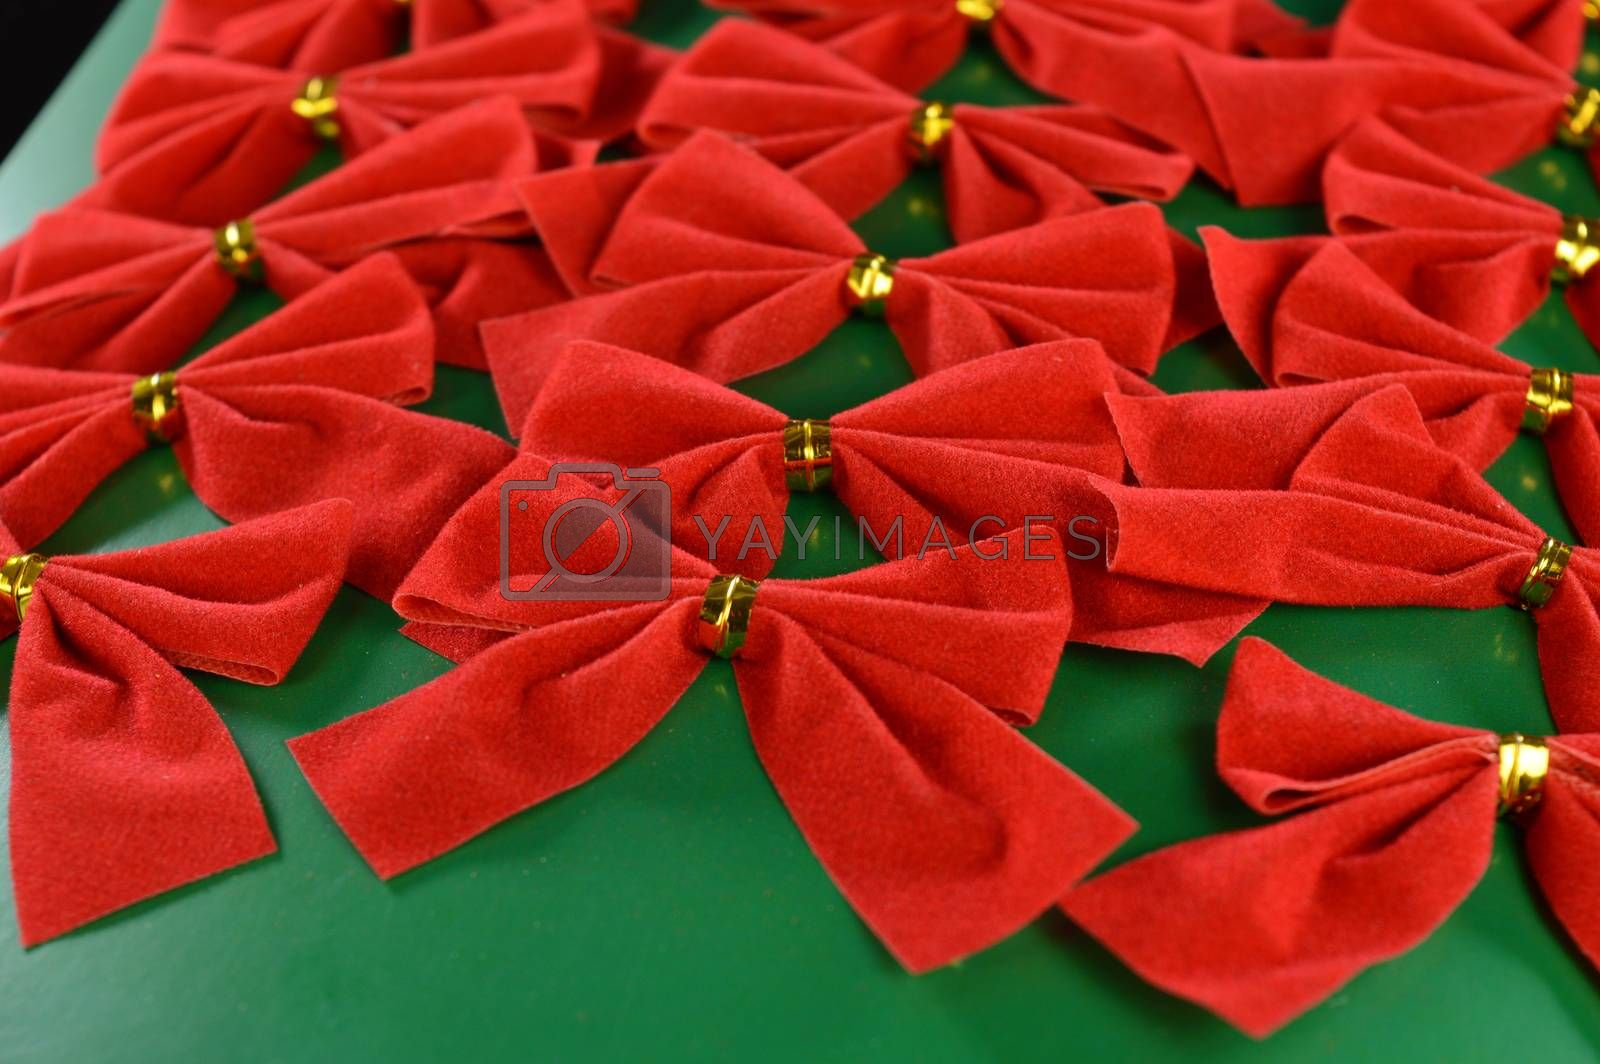 A full set of packaged decorative red bows used during the Christmas holiday season for dressing up the tree or gifts.